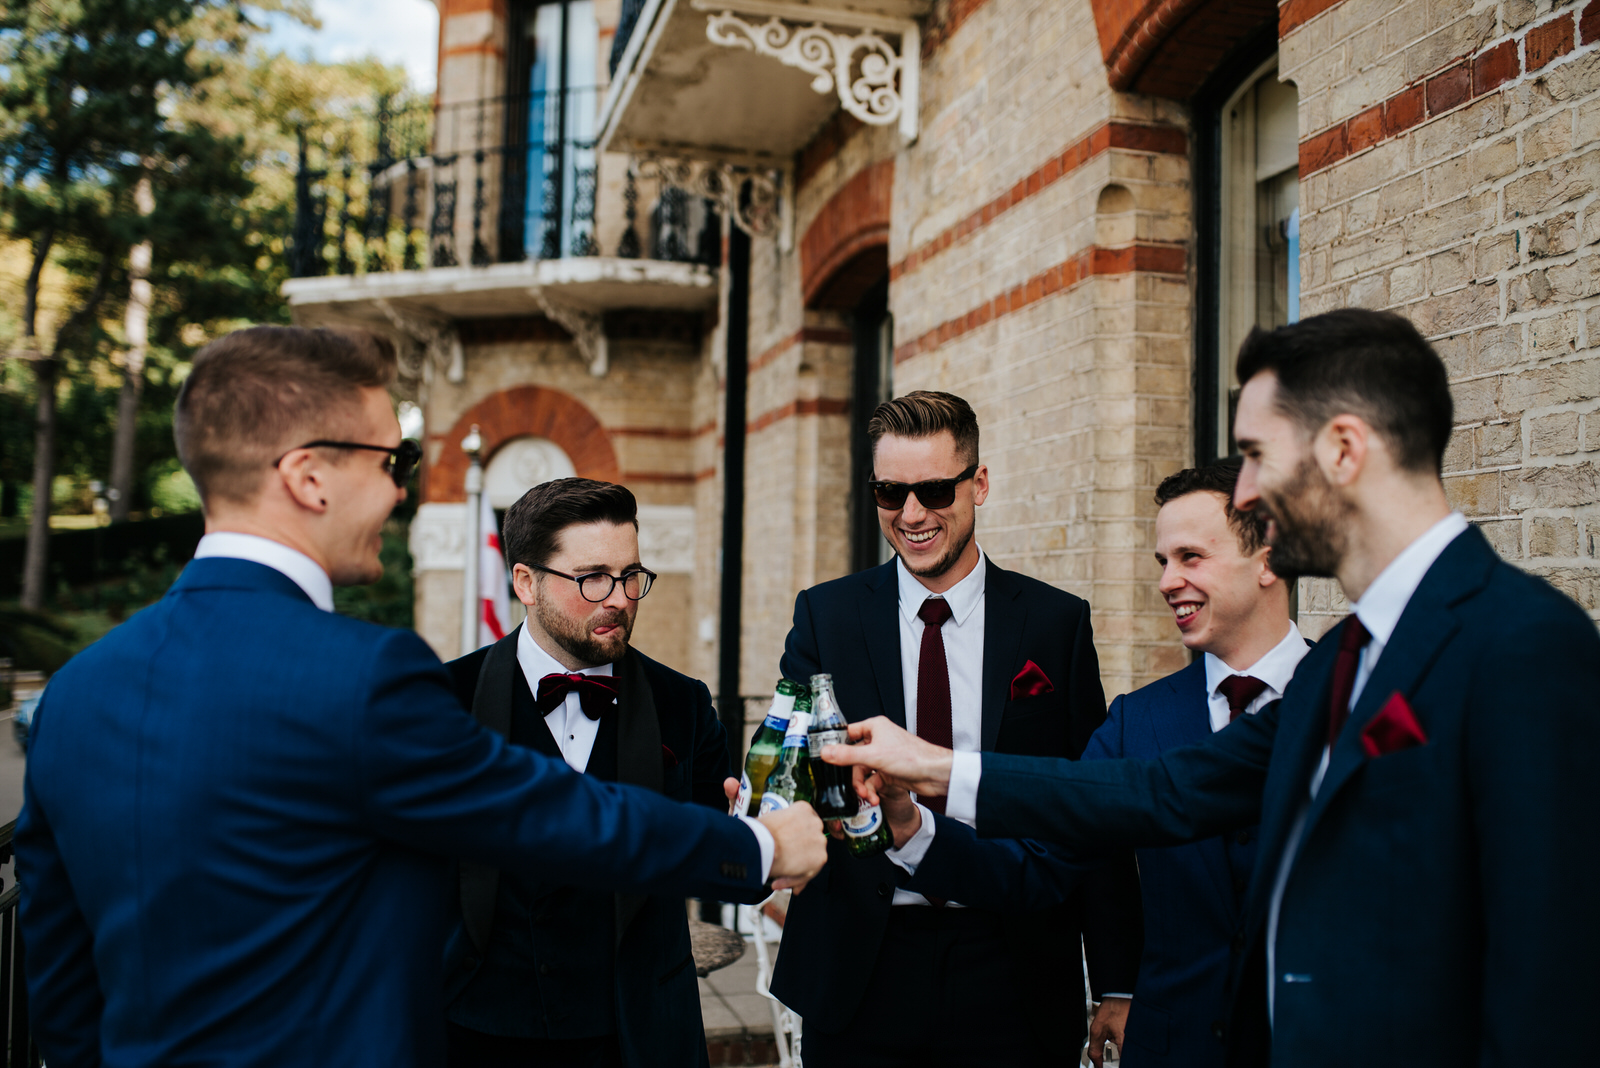 Group shot of groomsmen as they have a drink and toast before ceremony